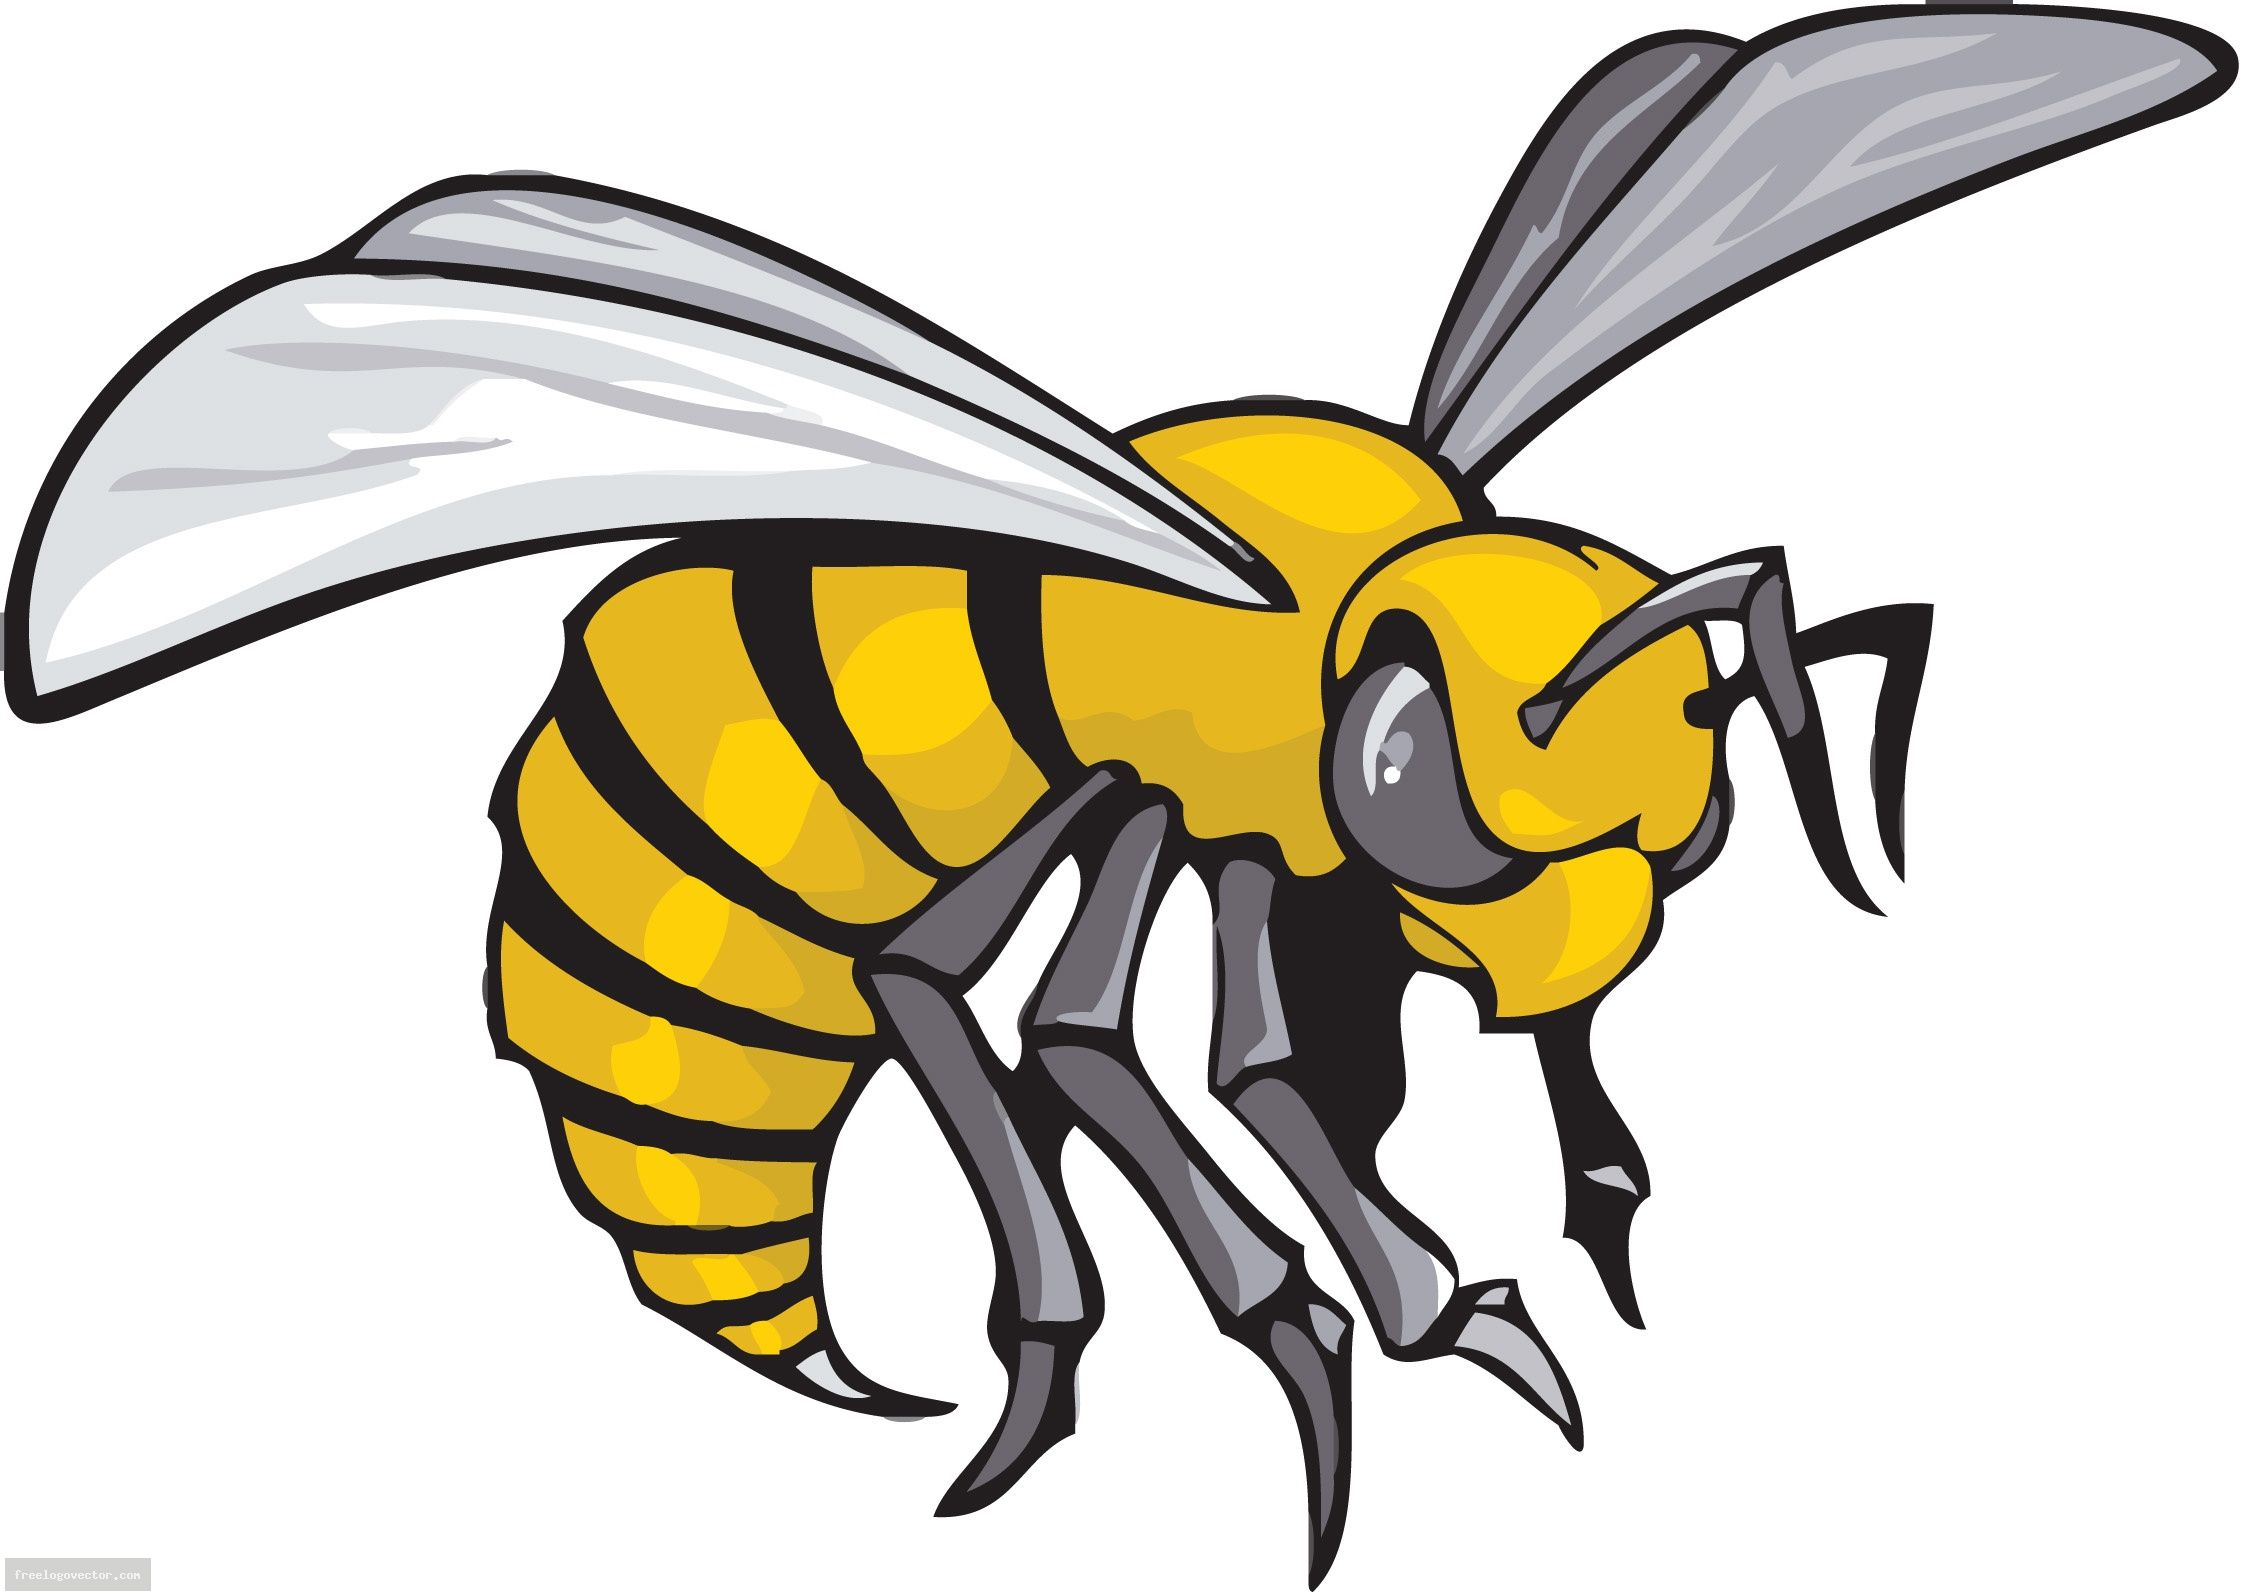 hornet 20clipart clipart library free clipart images favorite rh pinterest com Yellow Jackets Clip Art Moving Yellow Jackets Clip Art Moving